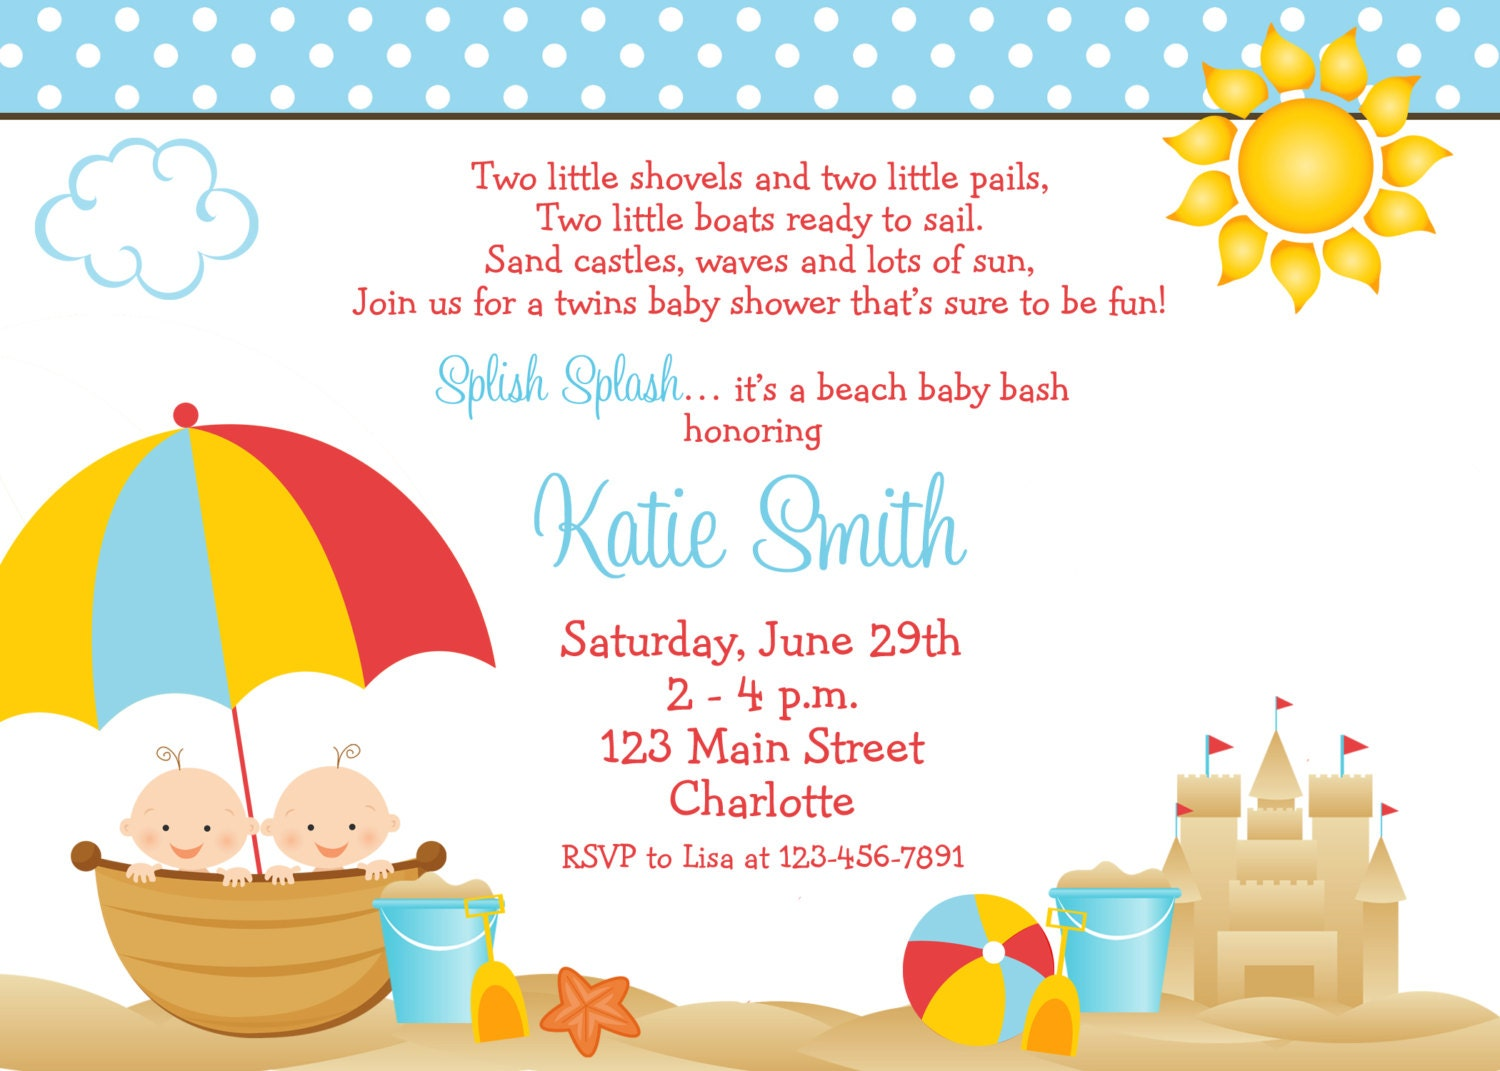 Beach baby shower invitation twins baby shower invitation zoom filmwisefo Image collections